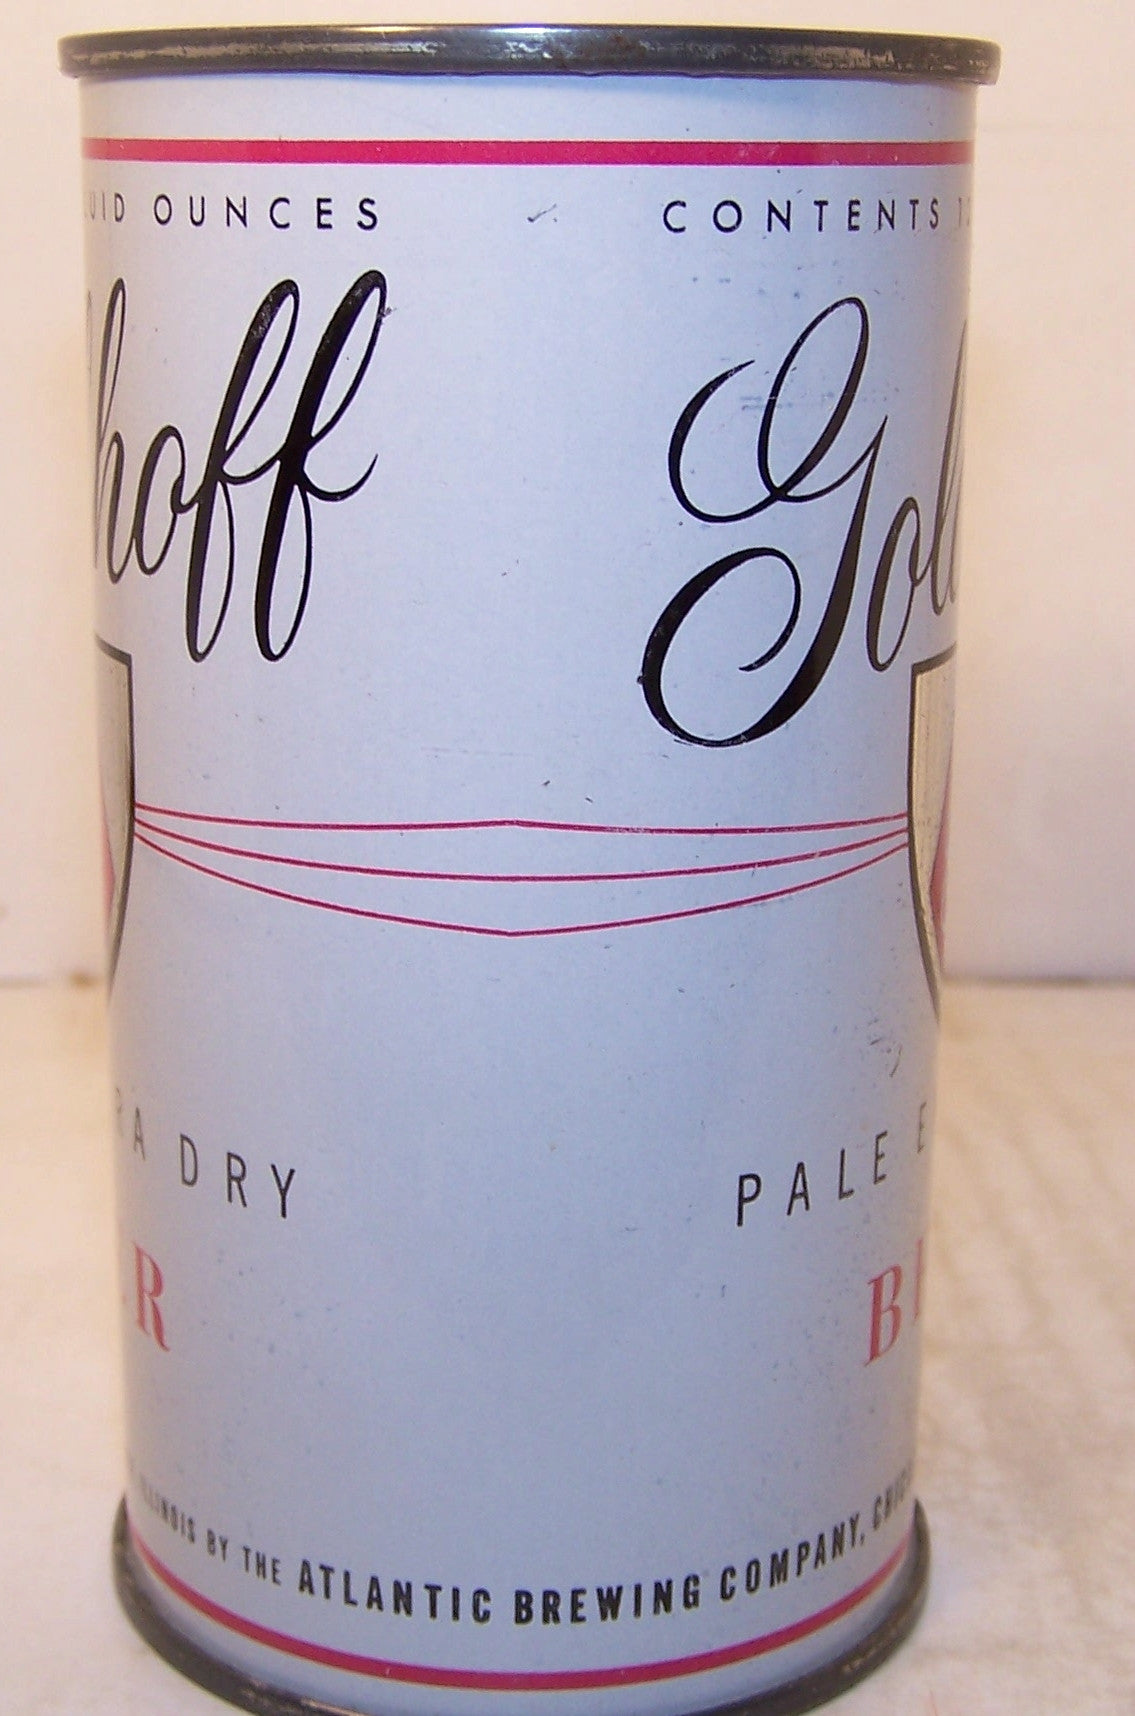 Goldhoff Pale Extra Dry Beer, USBC 71-39, Grade 1